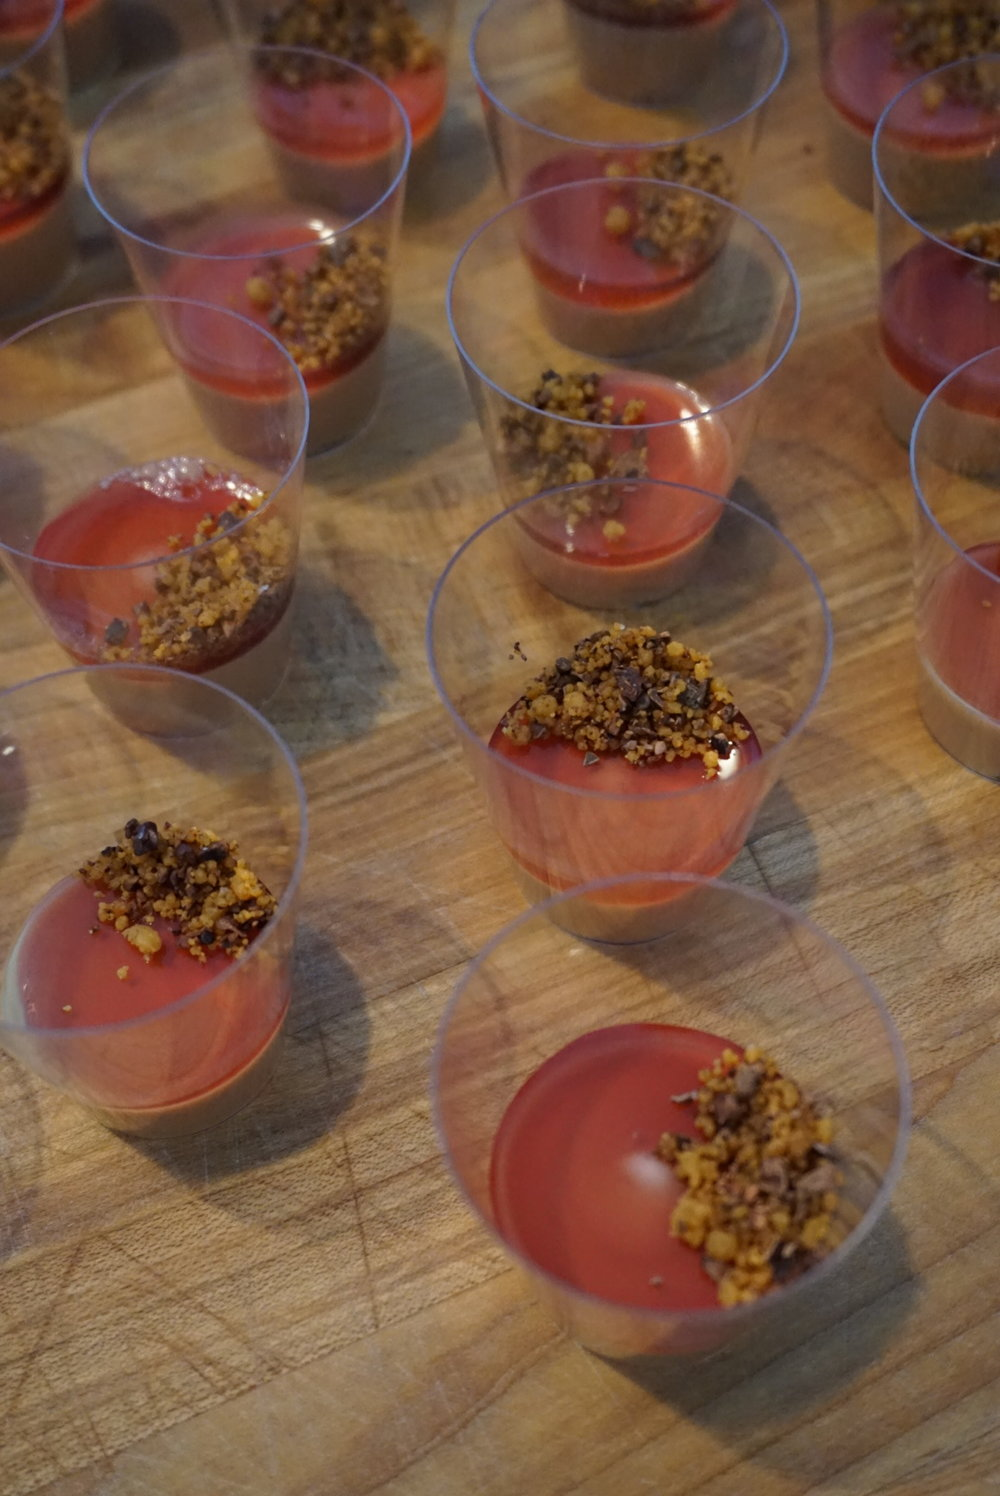 Hudson Valley's brown butter crumble & strawberry foie gras